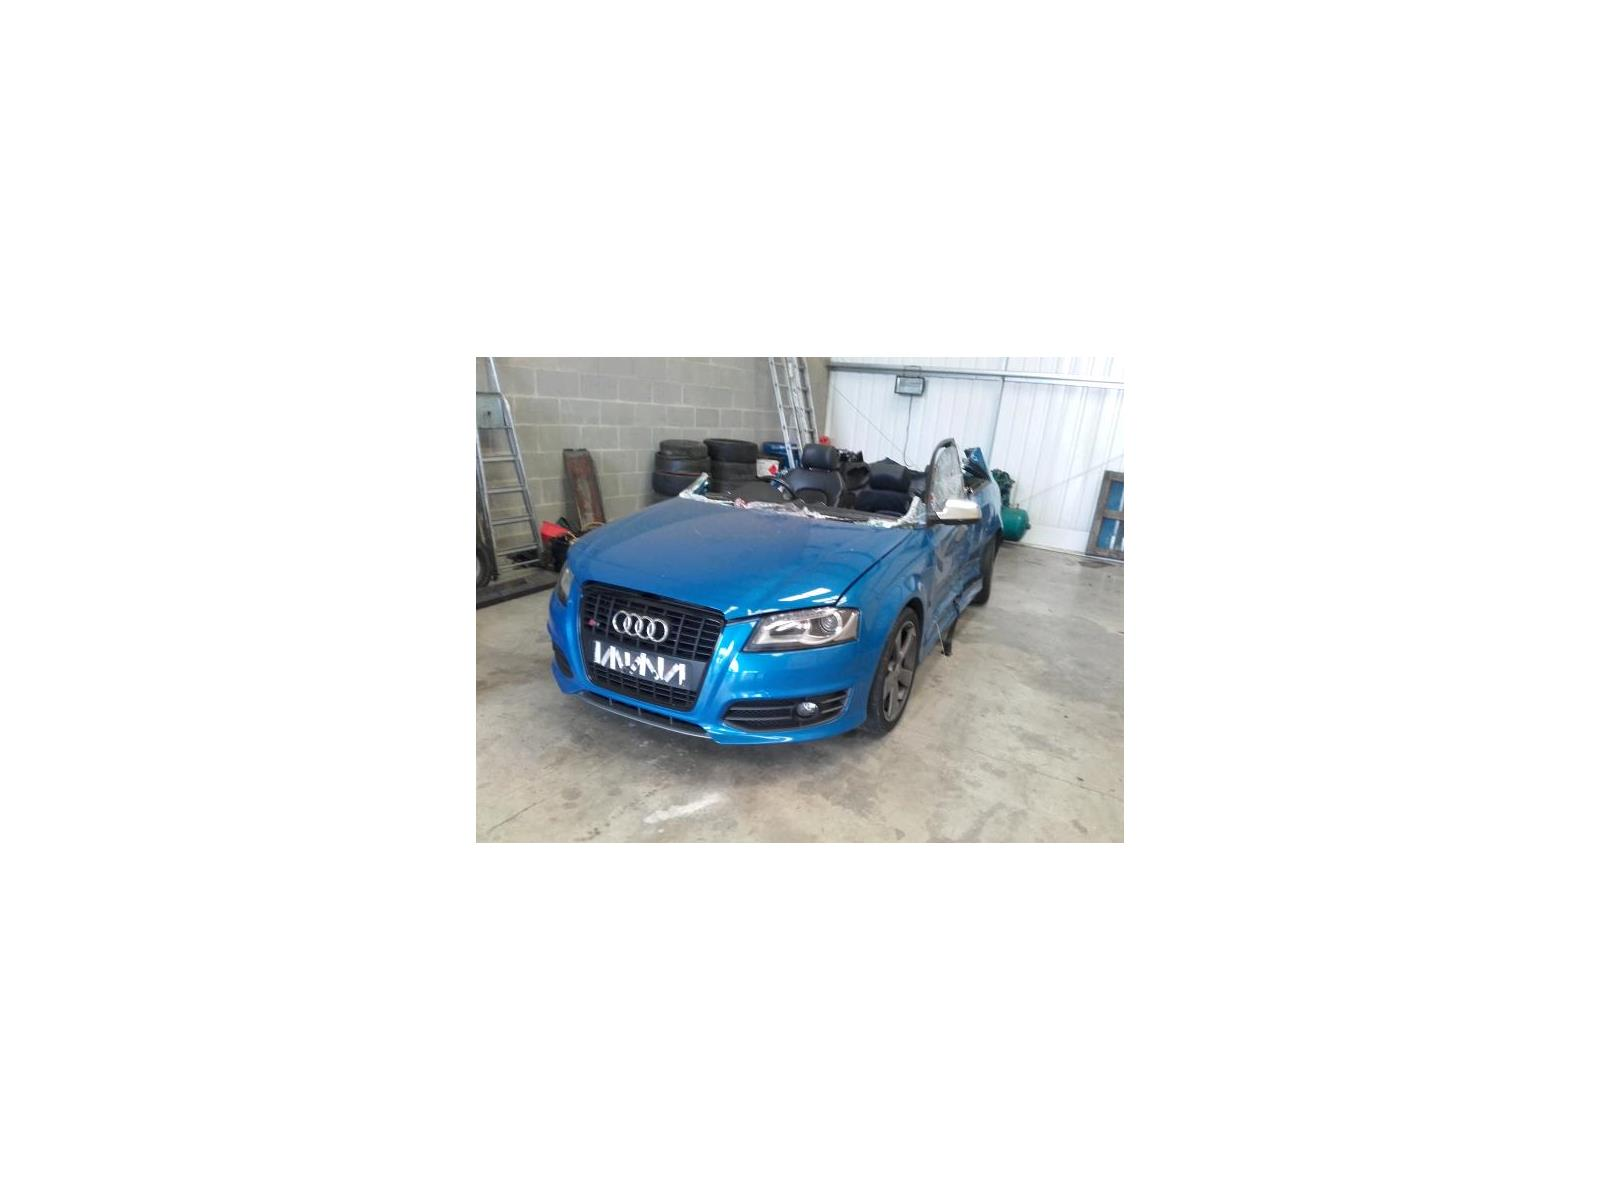 audi a3 2008 to 2013 air conditioning condenser petrol manual rh motorhog co uk Audi A3 TDI Audi A3 Service Manual